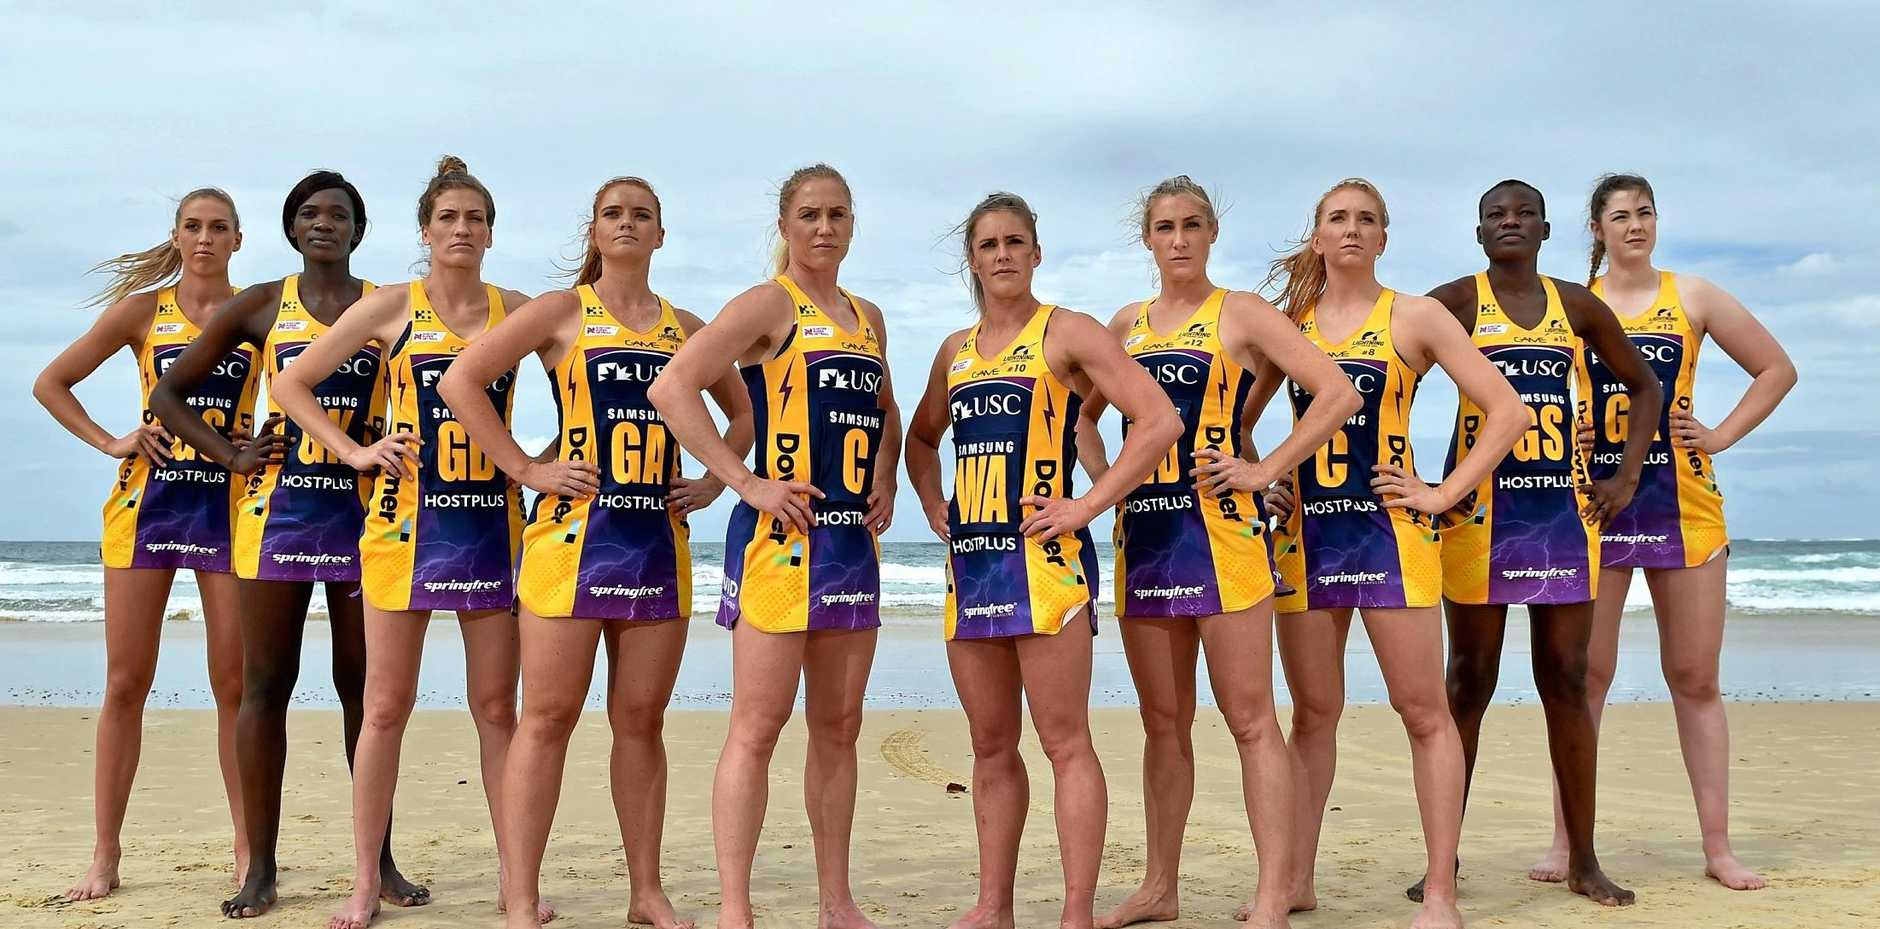 LIGHTNING: Sunshine Coast Lightning athletes Cara Koenen, Phumza Maweni, Karla Pretorius, Steph Wood, Laura Langman, Laura Scherian, Jacqui Russell, Madeline McAuliffe, Peace Proscovia and Annika Lee-Jones.